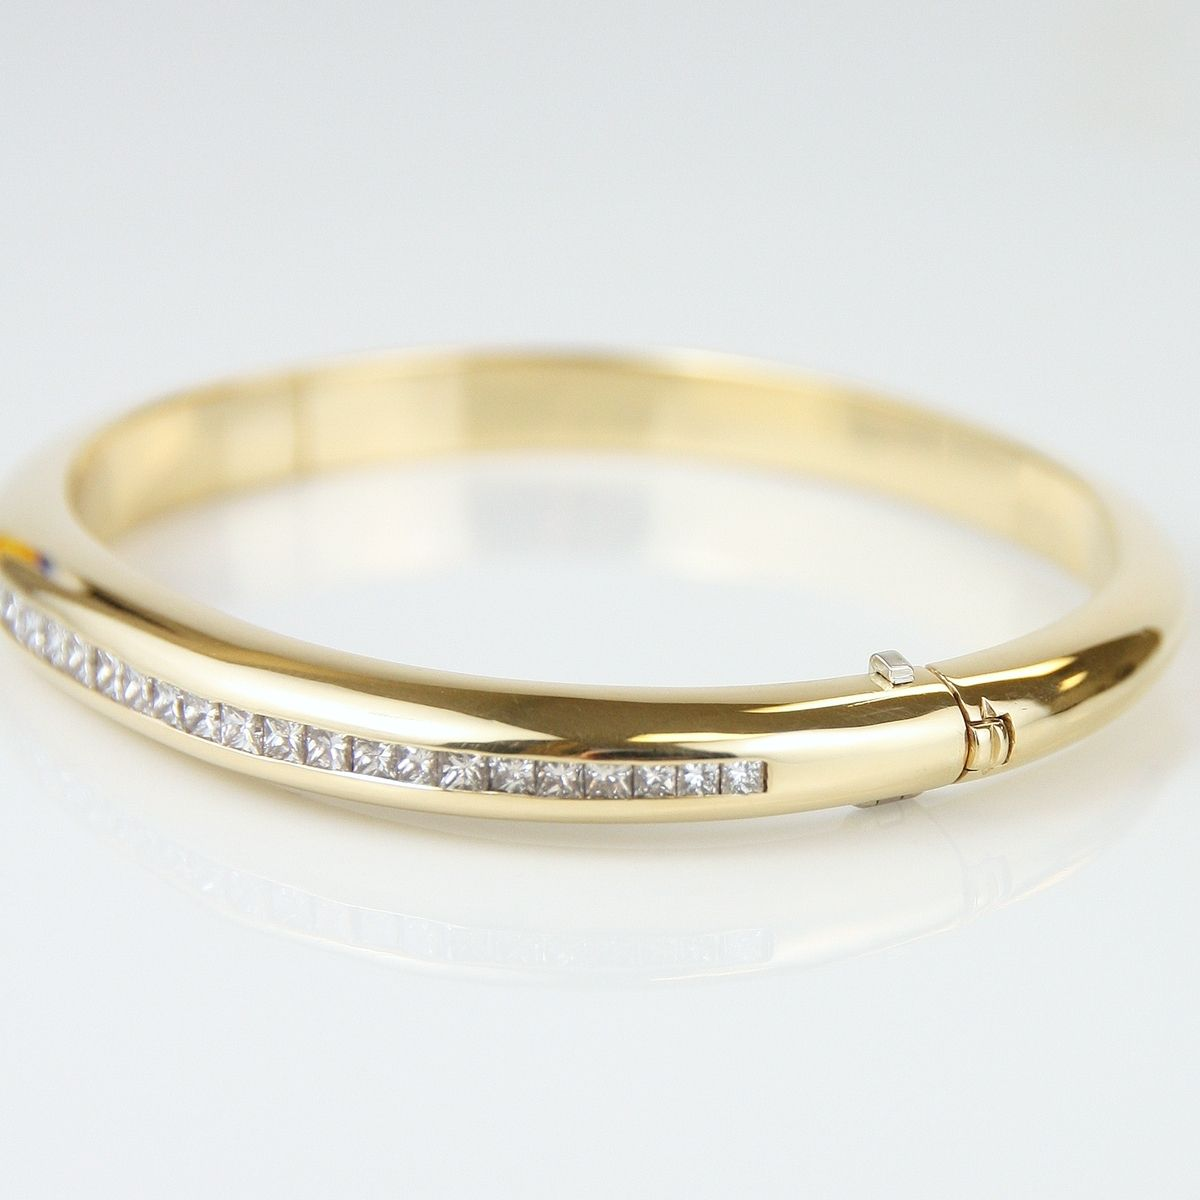 Custom Made Elegant 18kt Yellow Gold And Diamond Bangle Bracelet